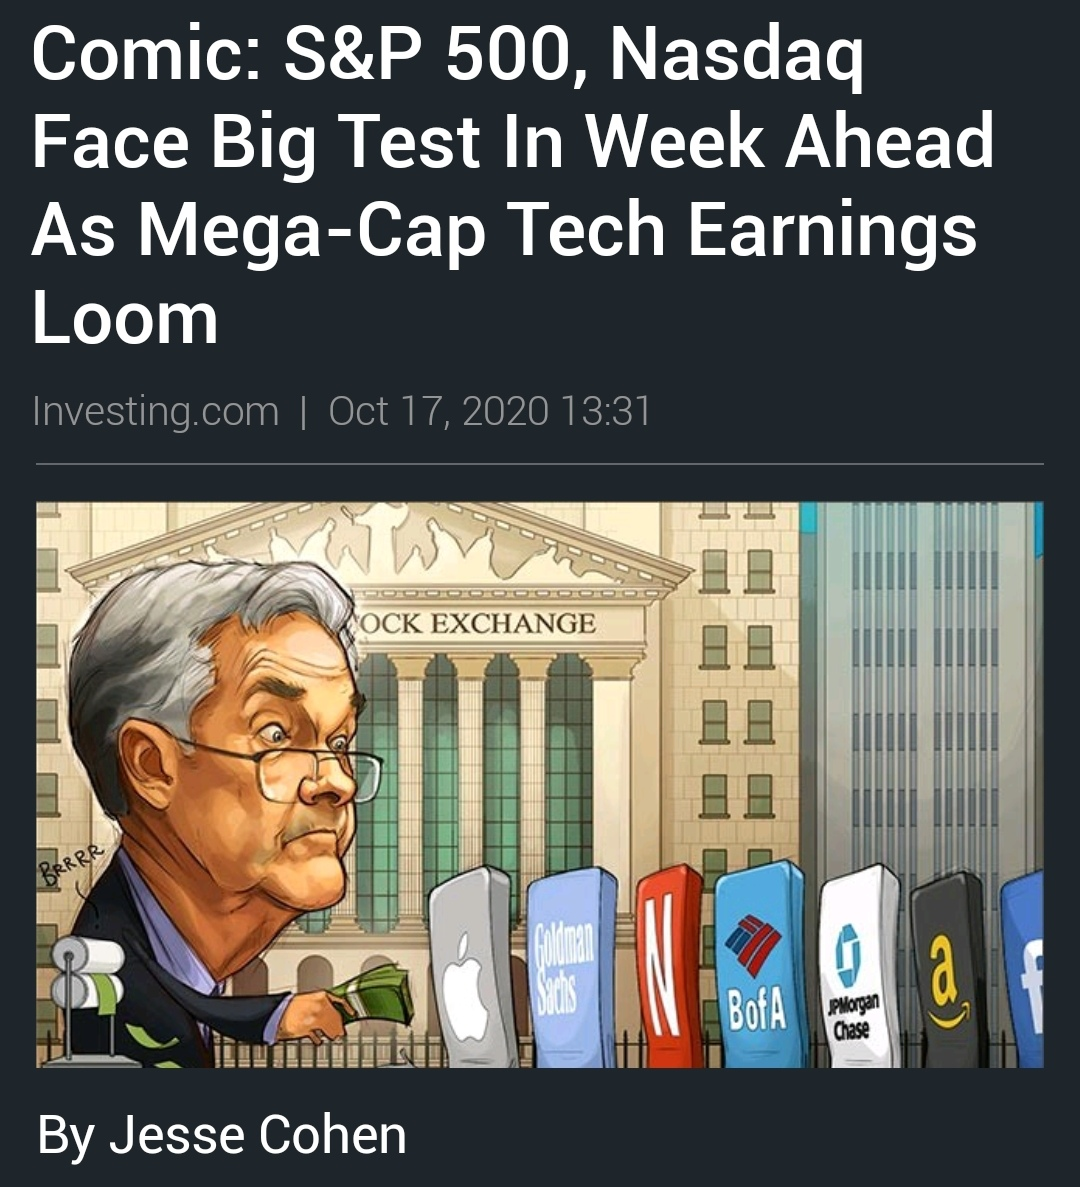 Earnings Nasdaq investing